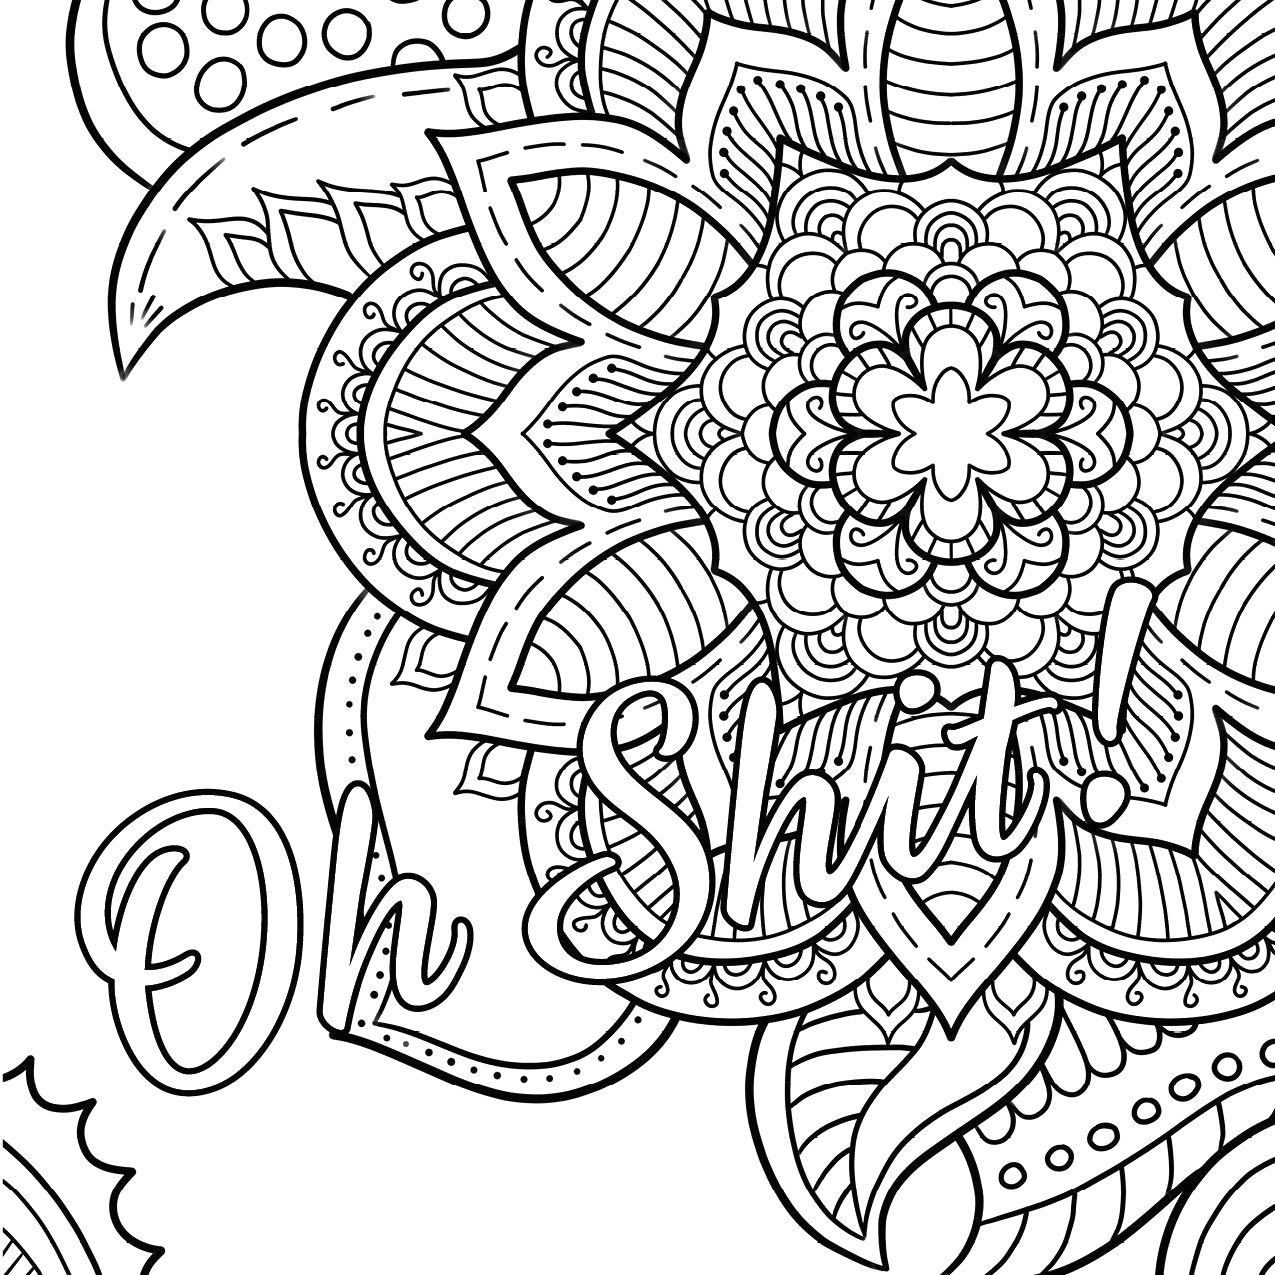 Printable Coloring Pages for Adults Swear Words Free Printable Coloring Pages for Adults Swear Words